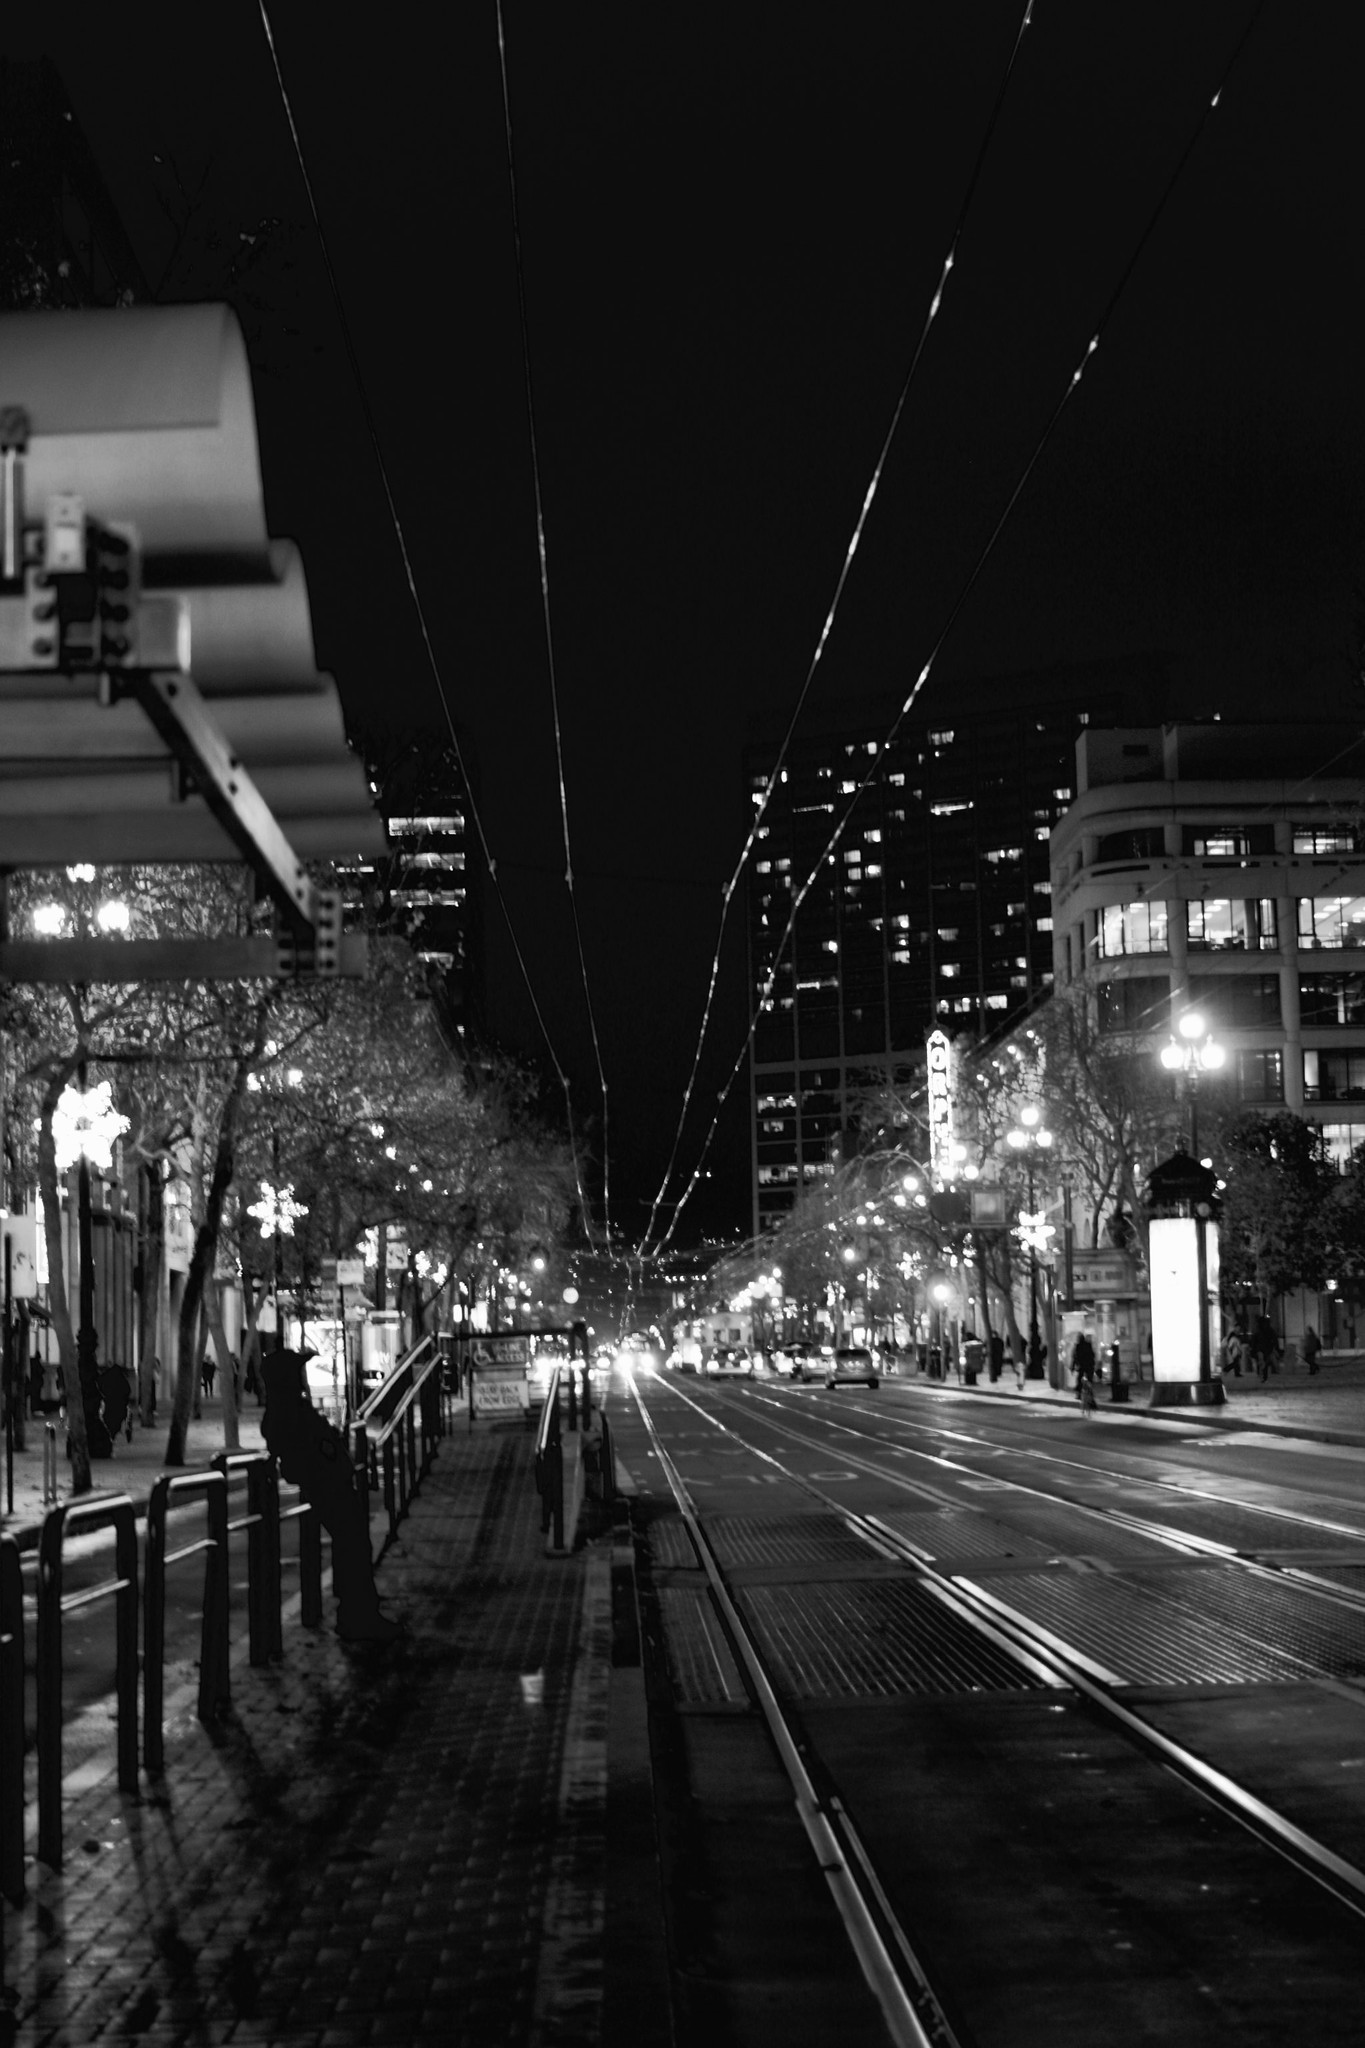 San Francisco - Market Street at Night